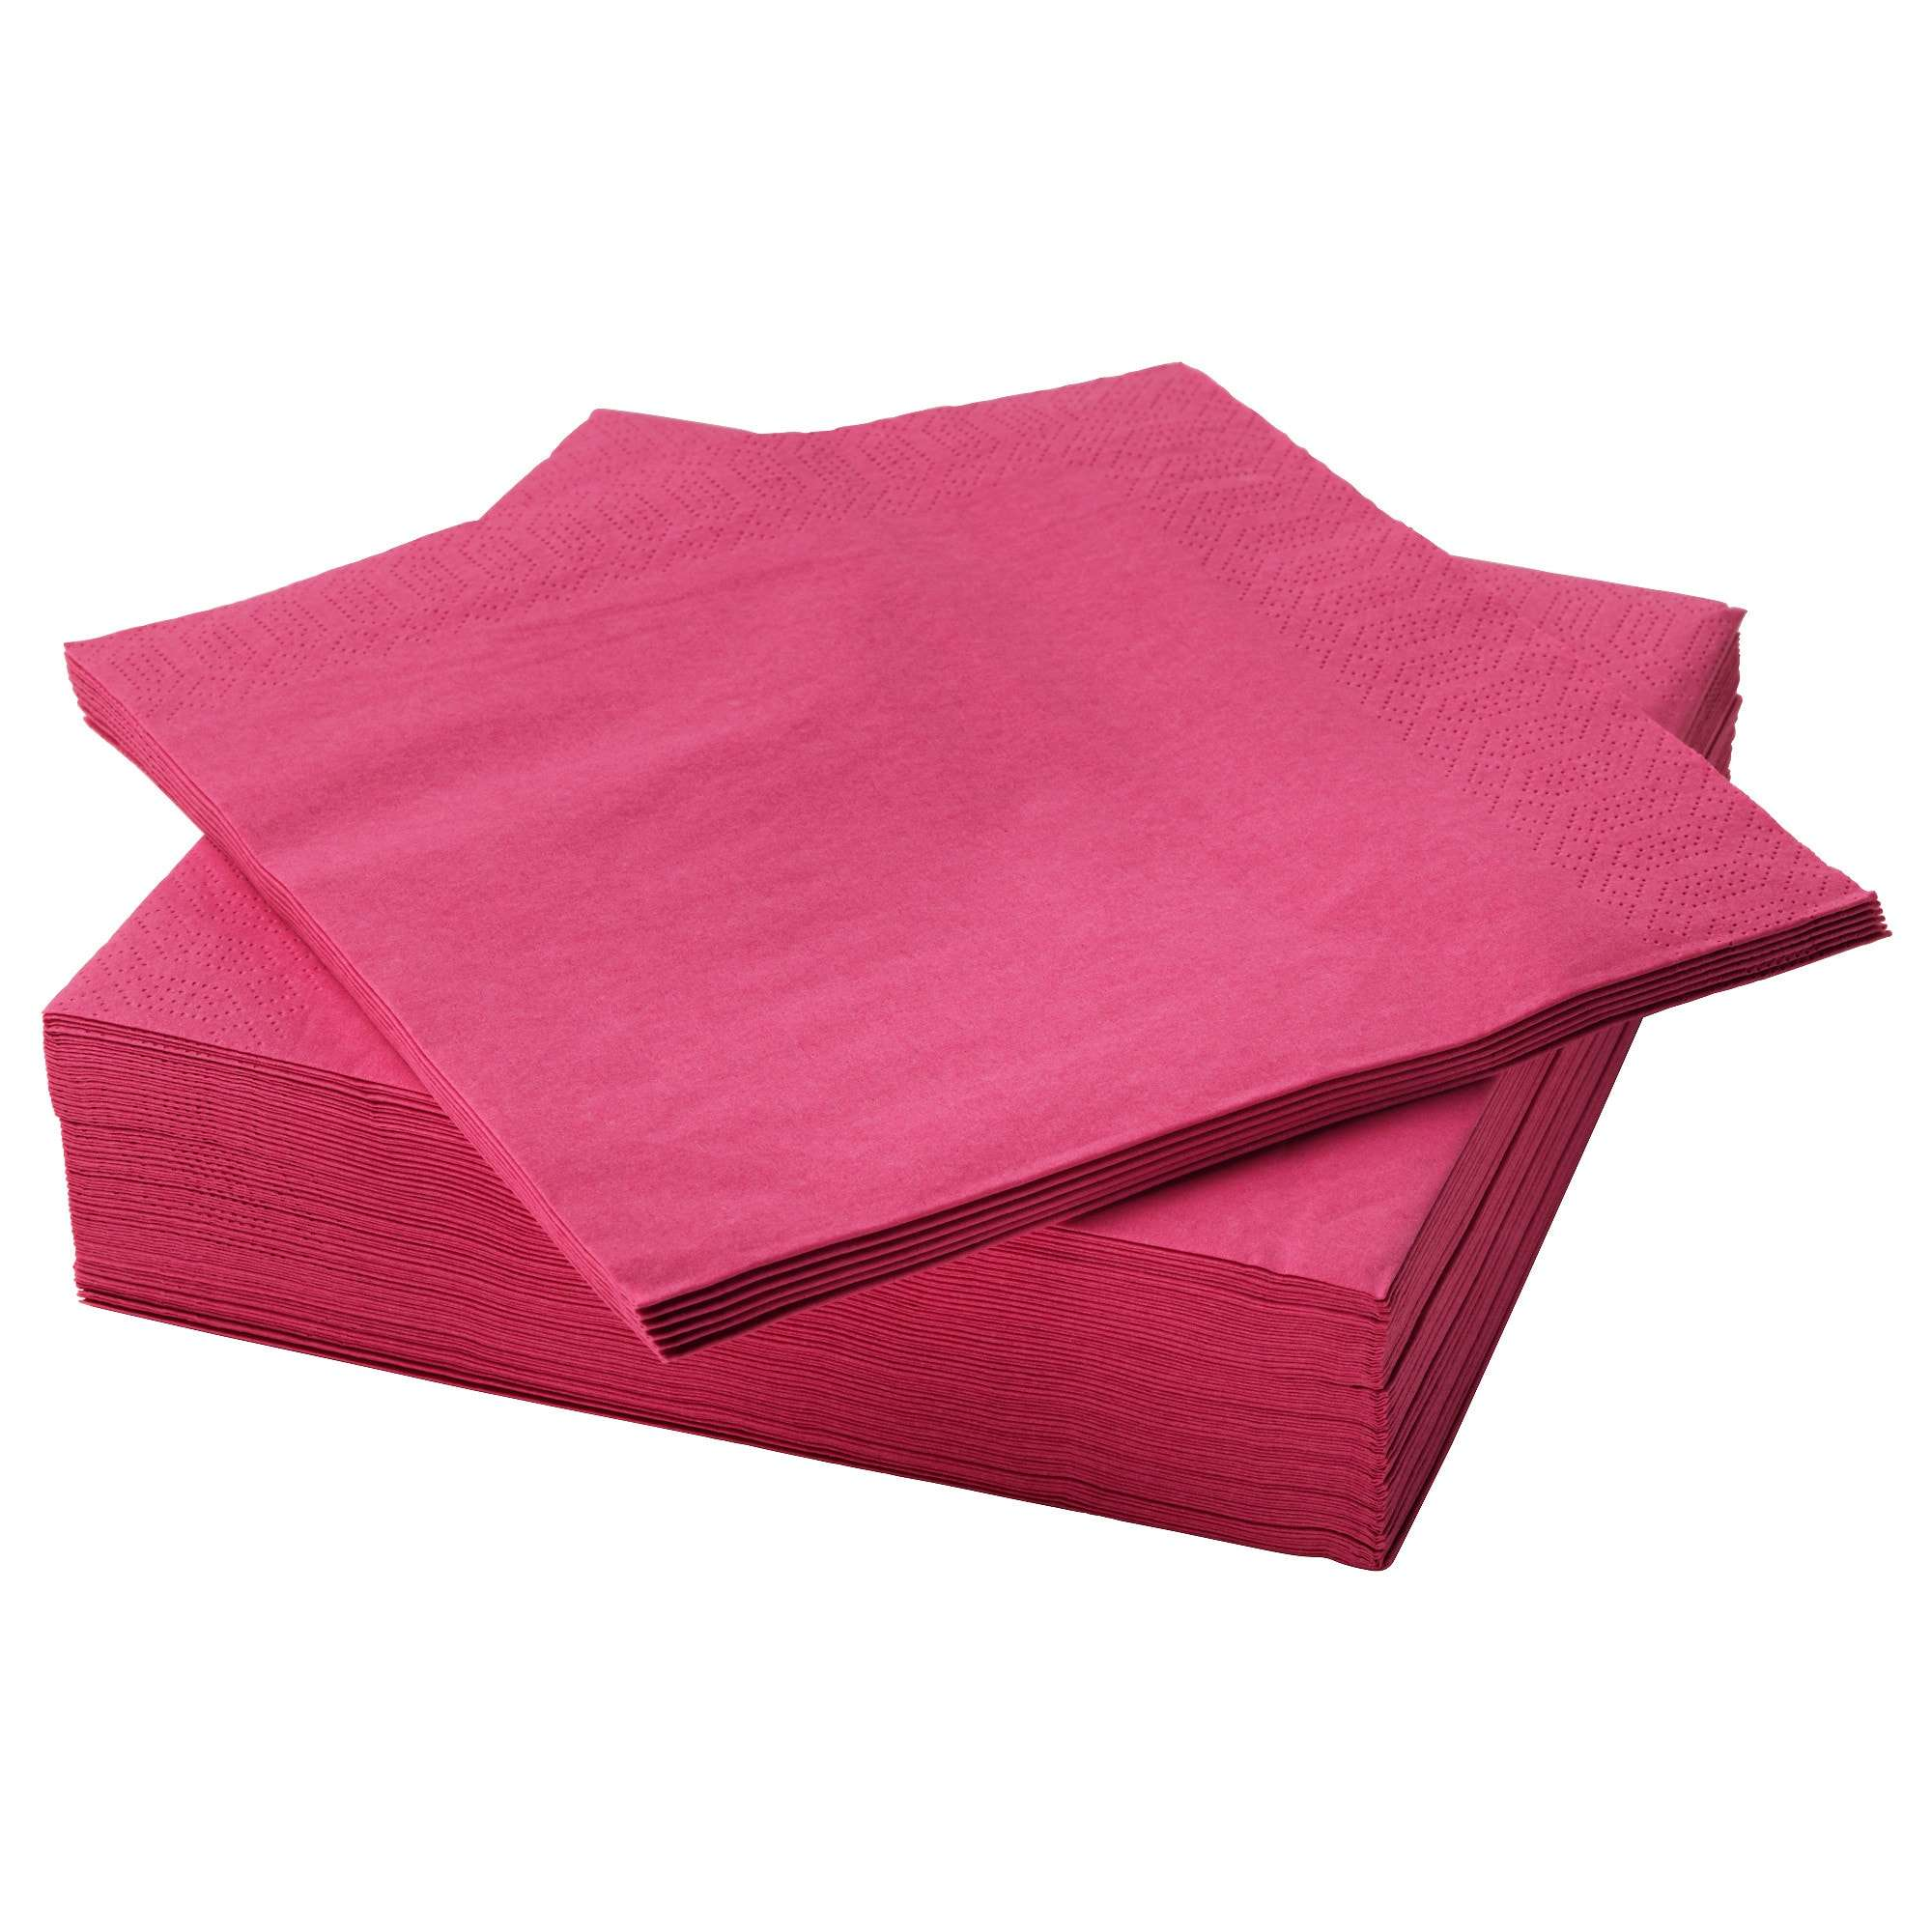 33*33cm Recycle Natural Color Paper Tissue Napkin Manufacturer With Custom Printing Logo